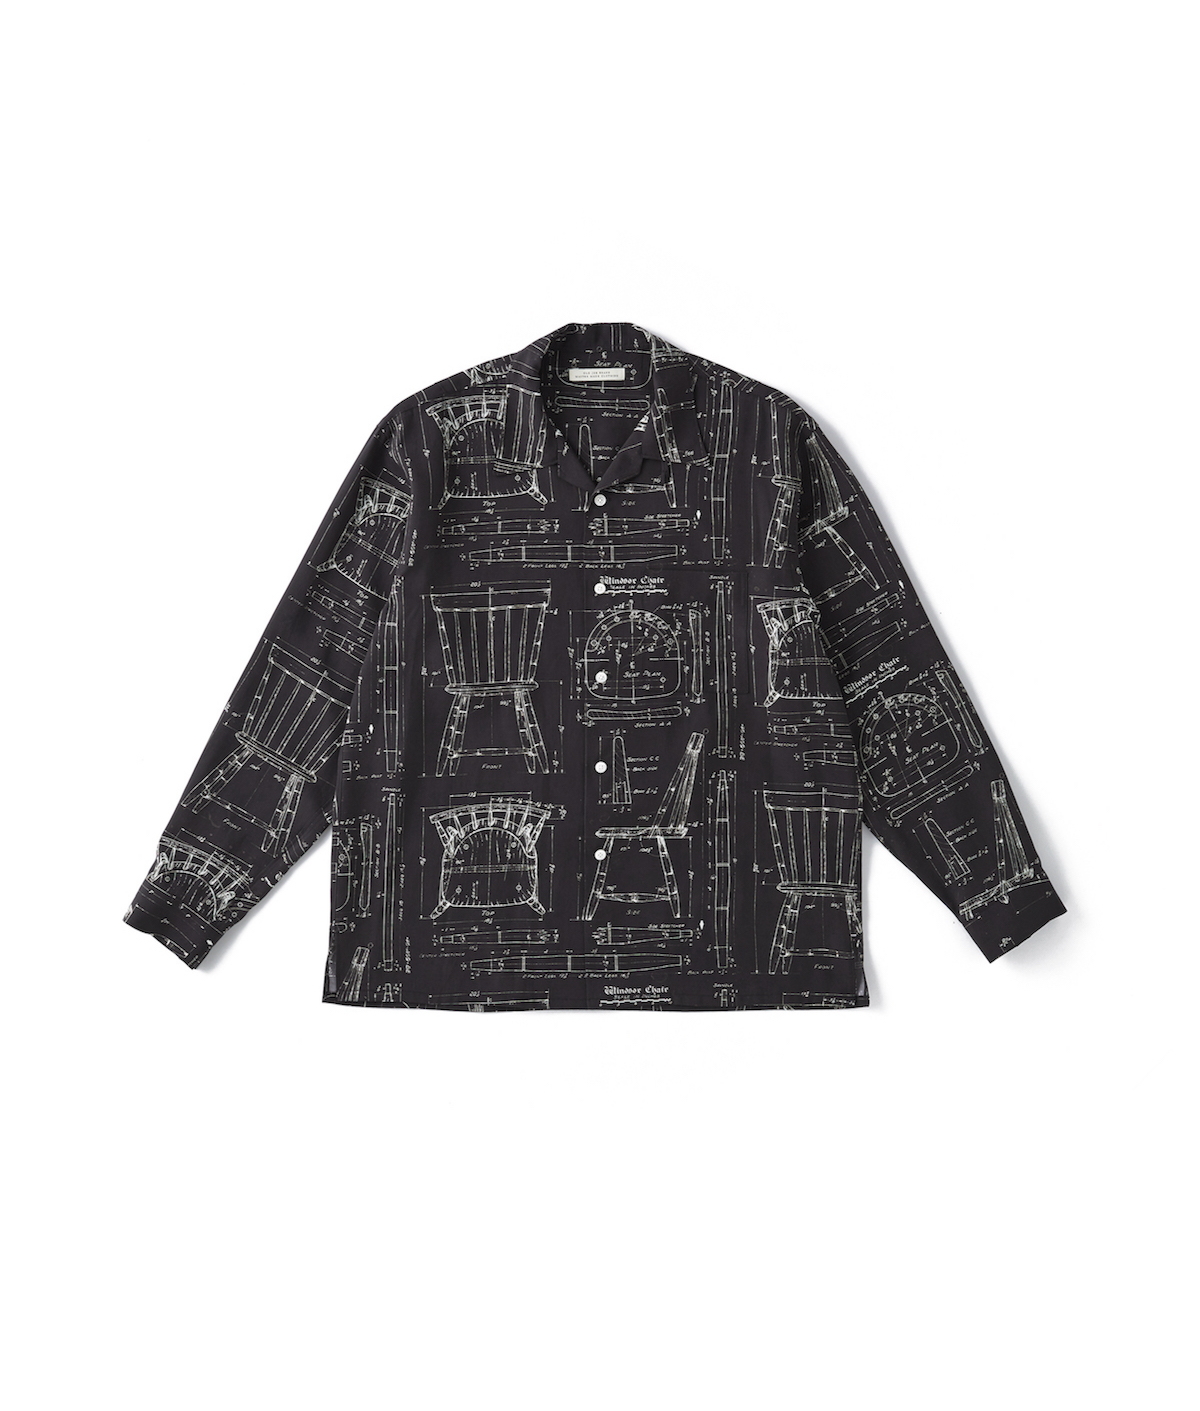 OLD JOE BRAND. 「 ORIGINAL PRINTED OPEN COLLAR SHIRTS (BLUE PRINT) Long-sleeve 」